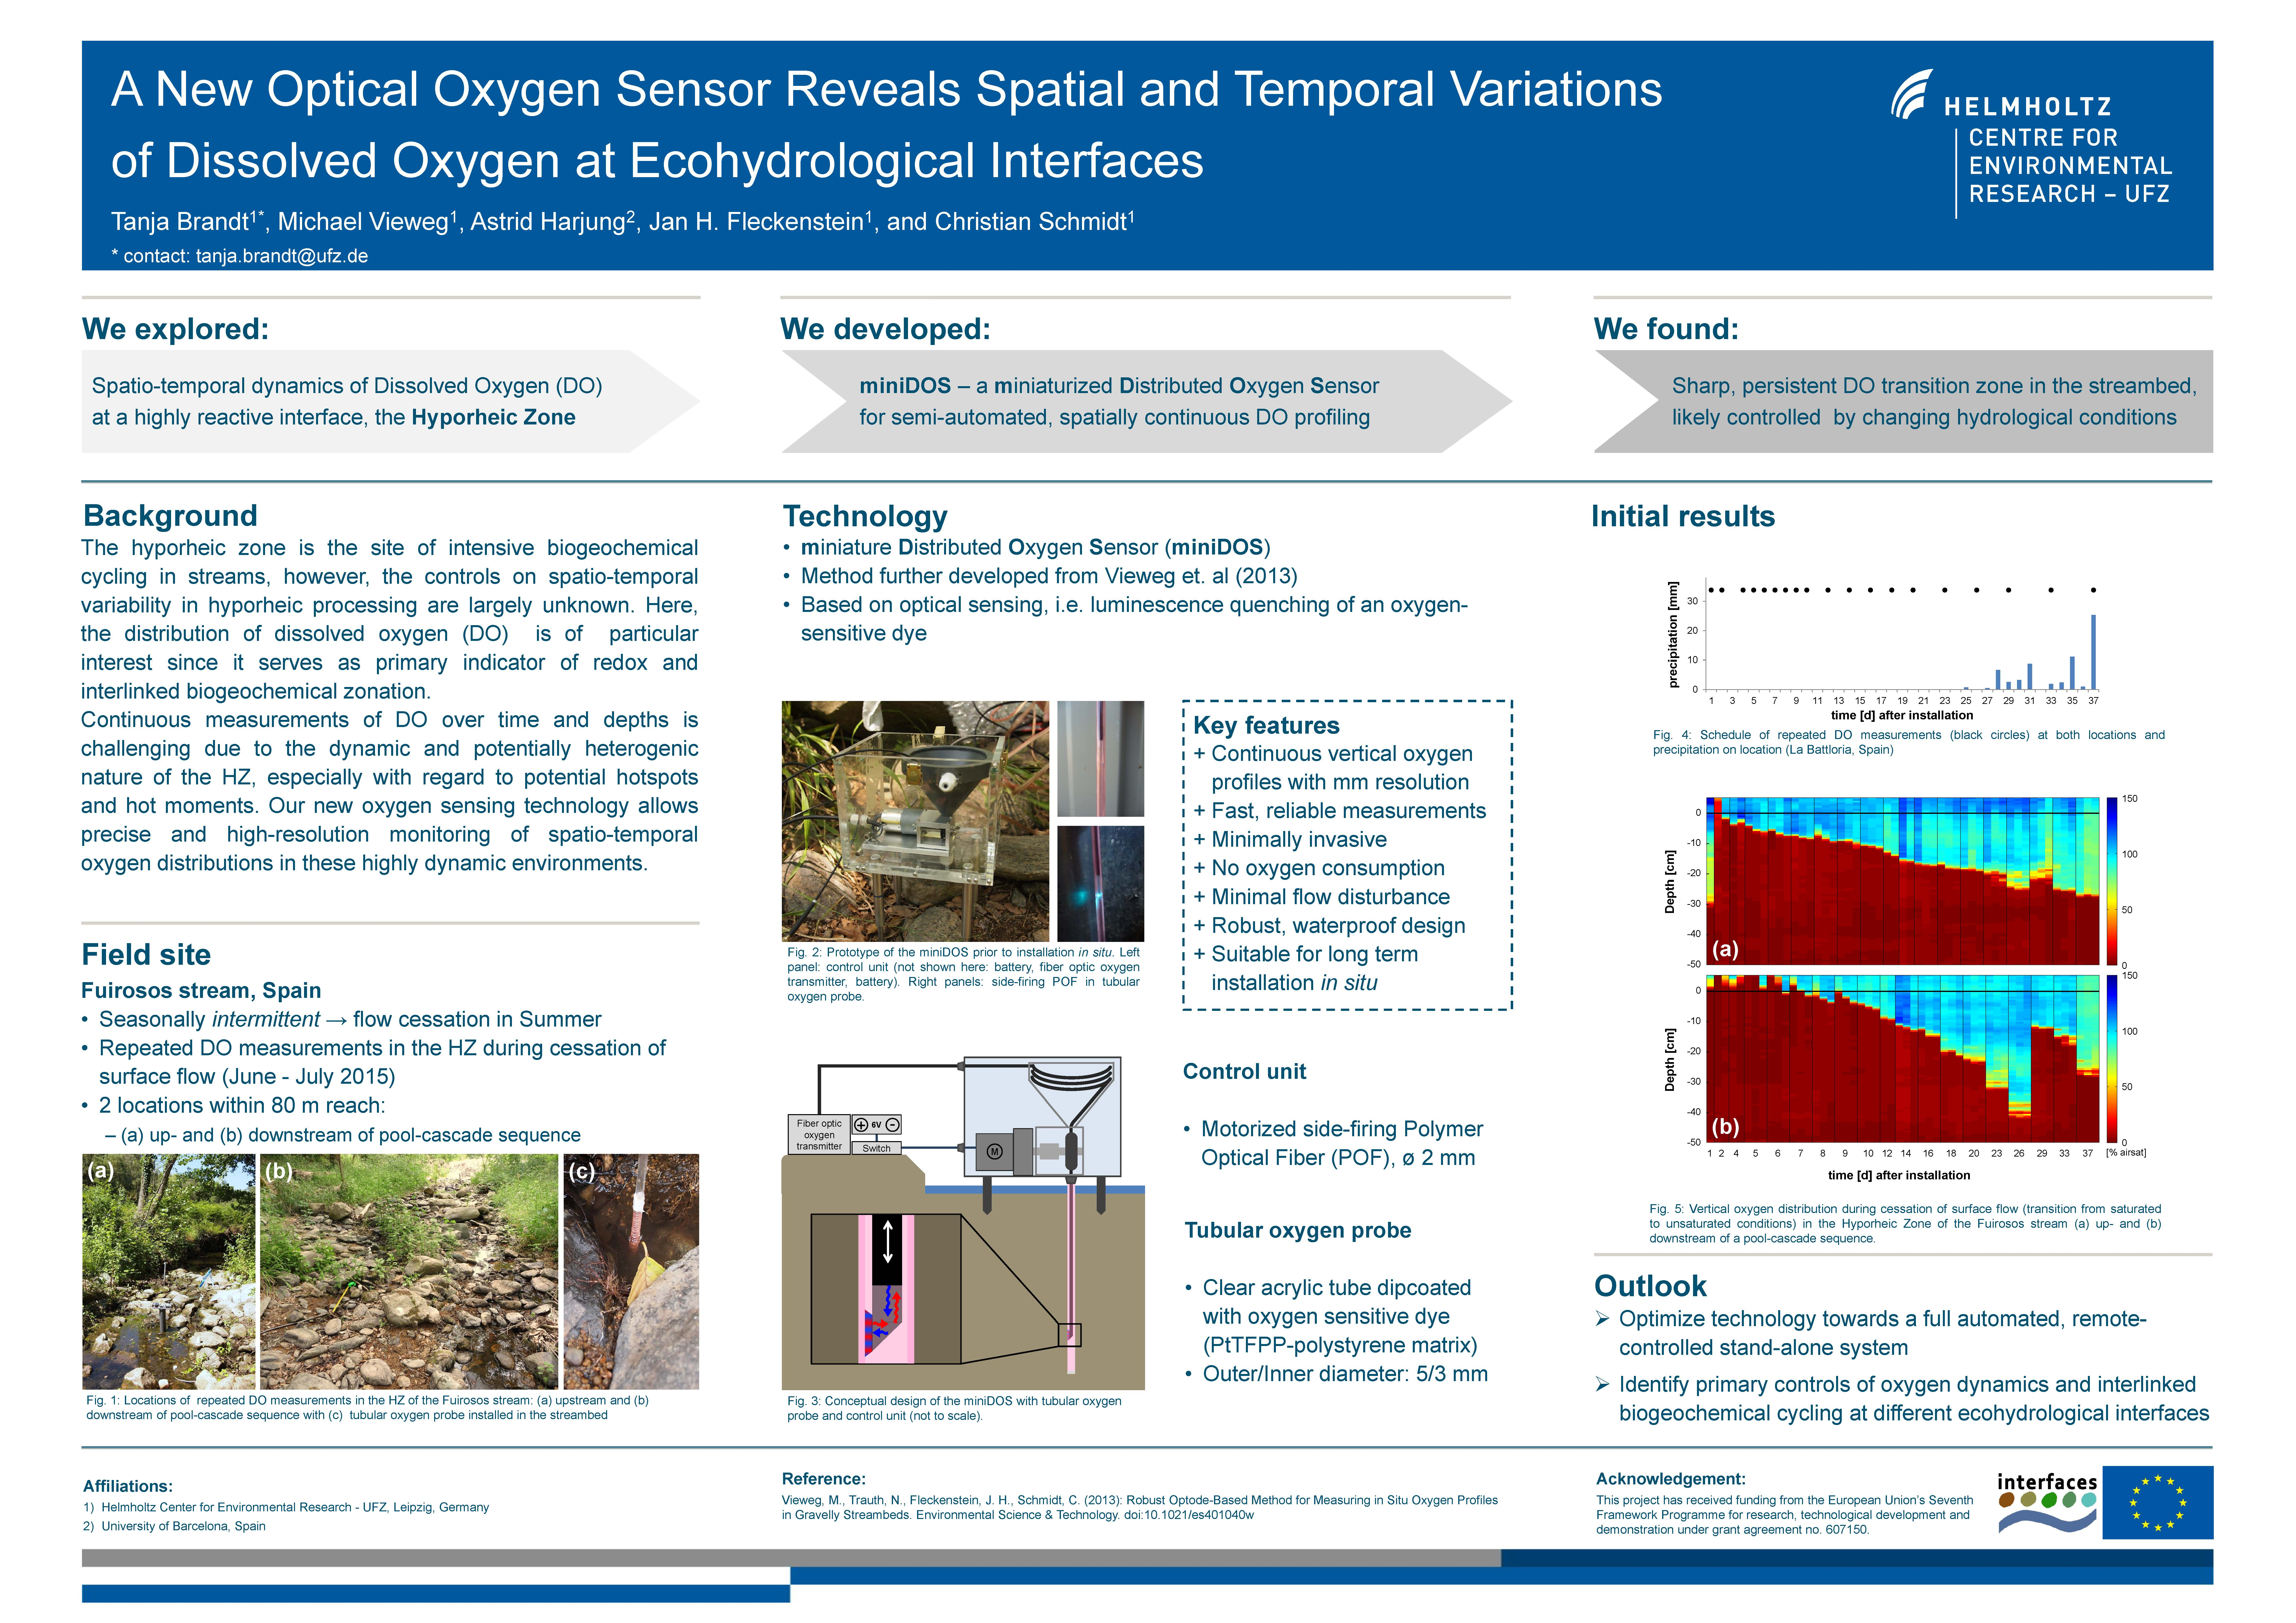 Conference Posters - Helmholtz-Centre for Environmental Research